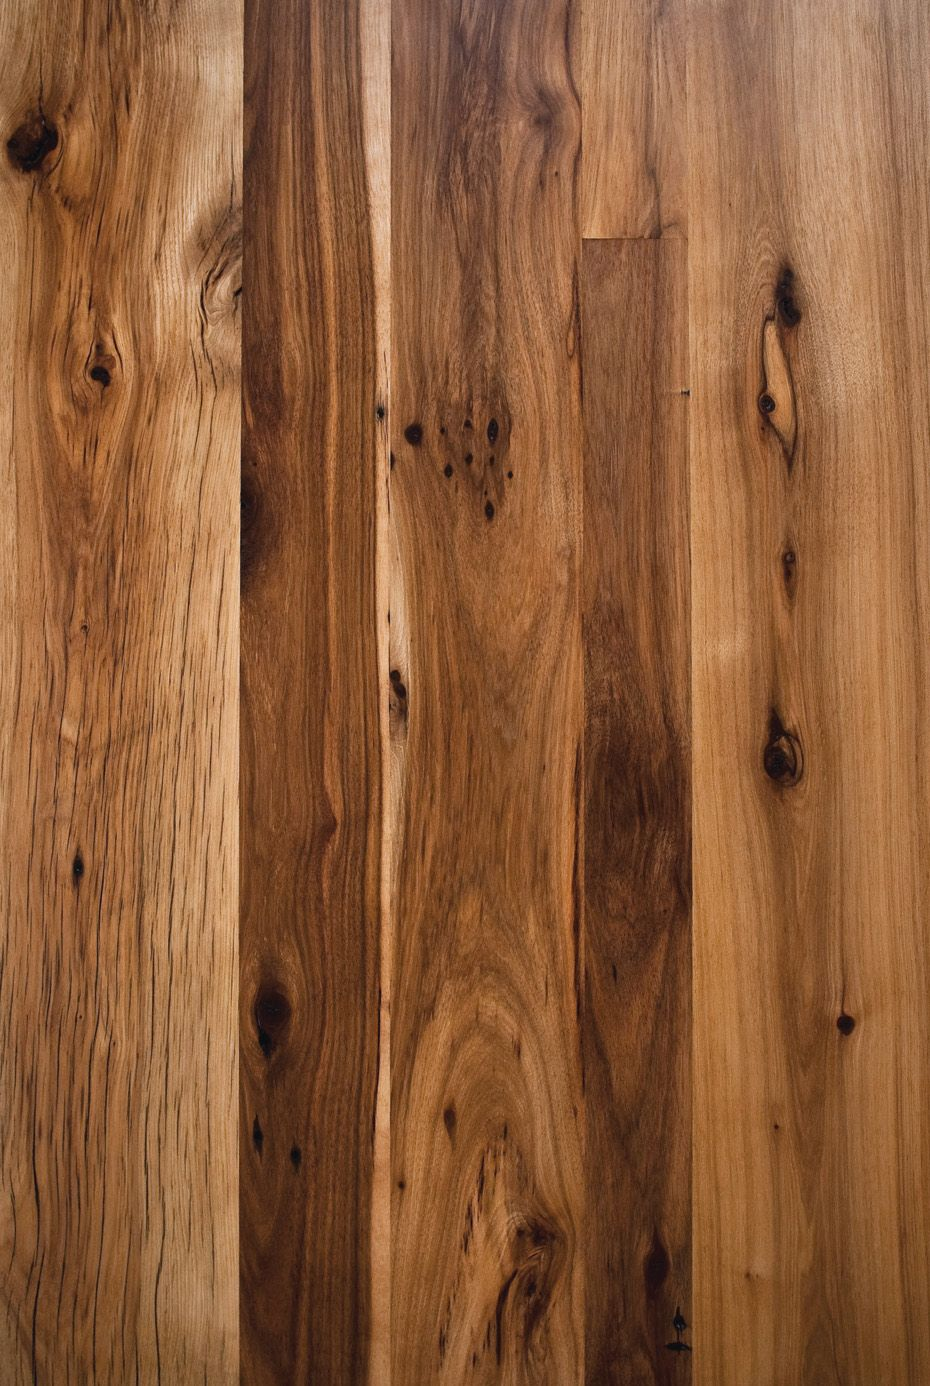 Hickory wood floors reclaimed antique flooring hickory for Recycled hardwood floors